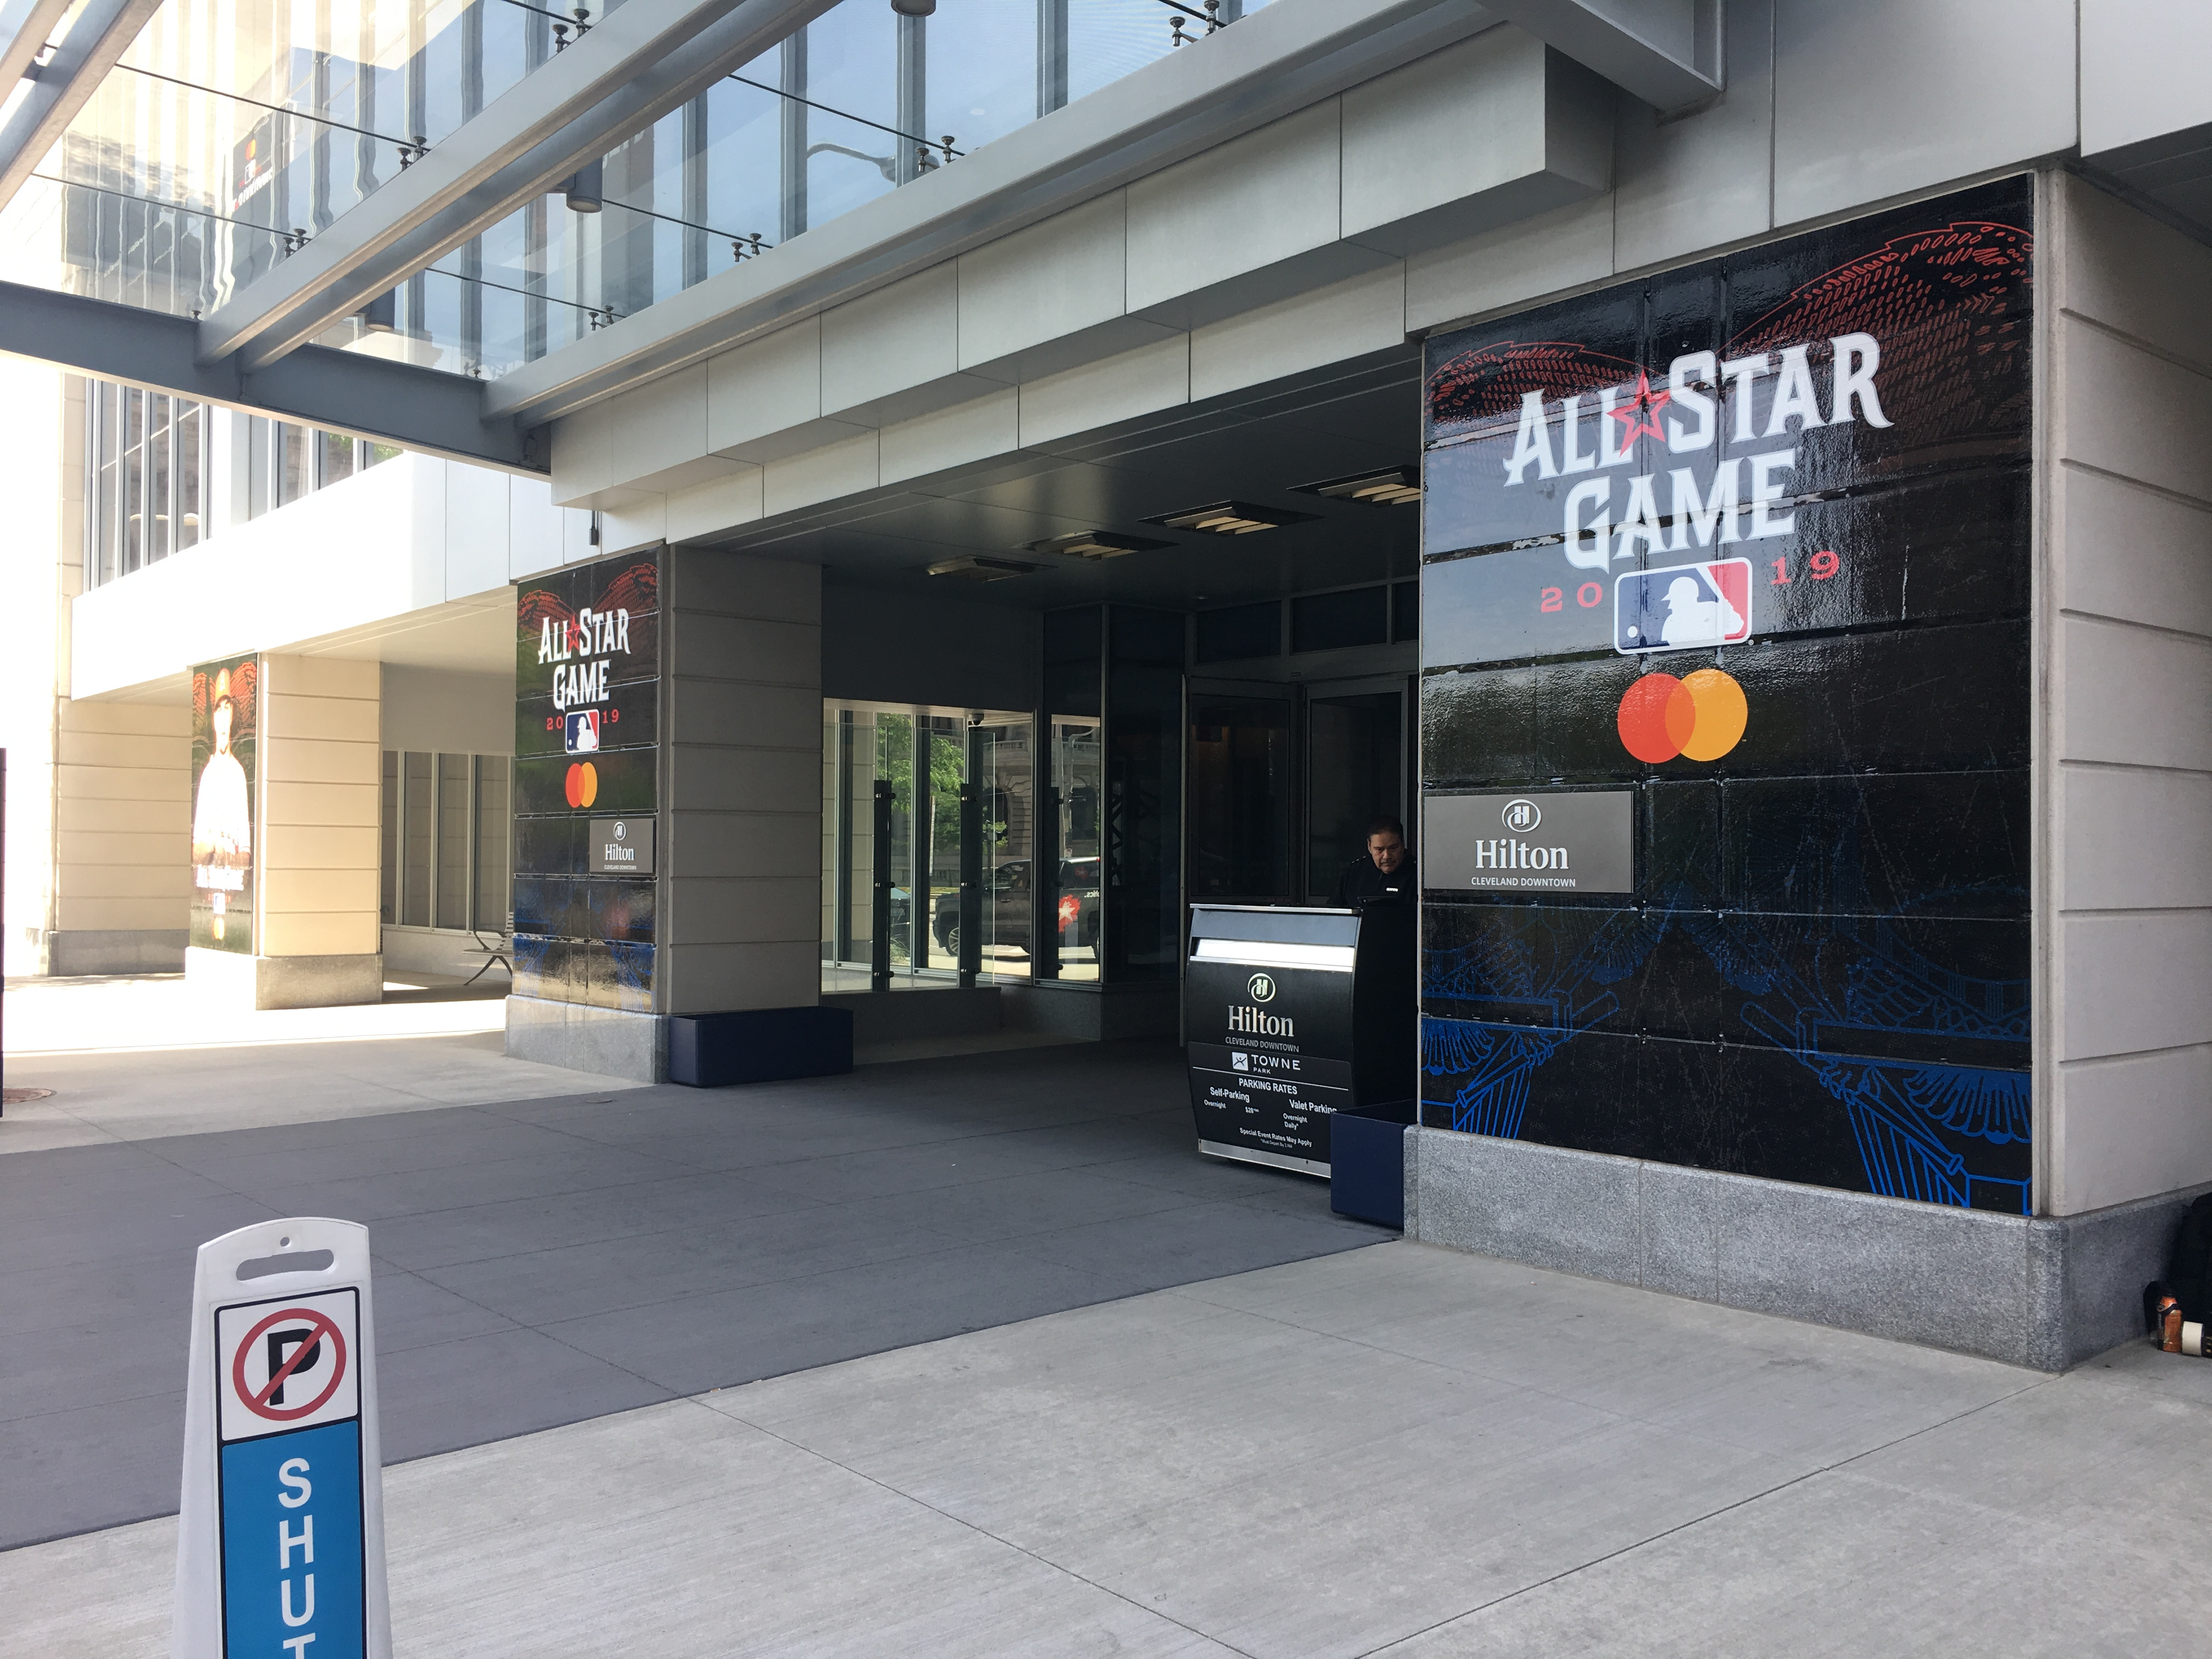 All Star Game wall graphics on Hilton hotel